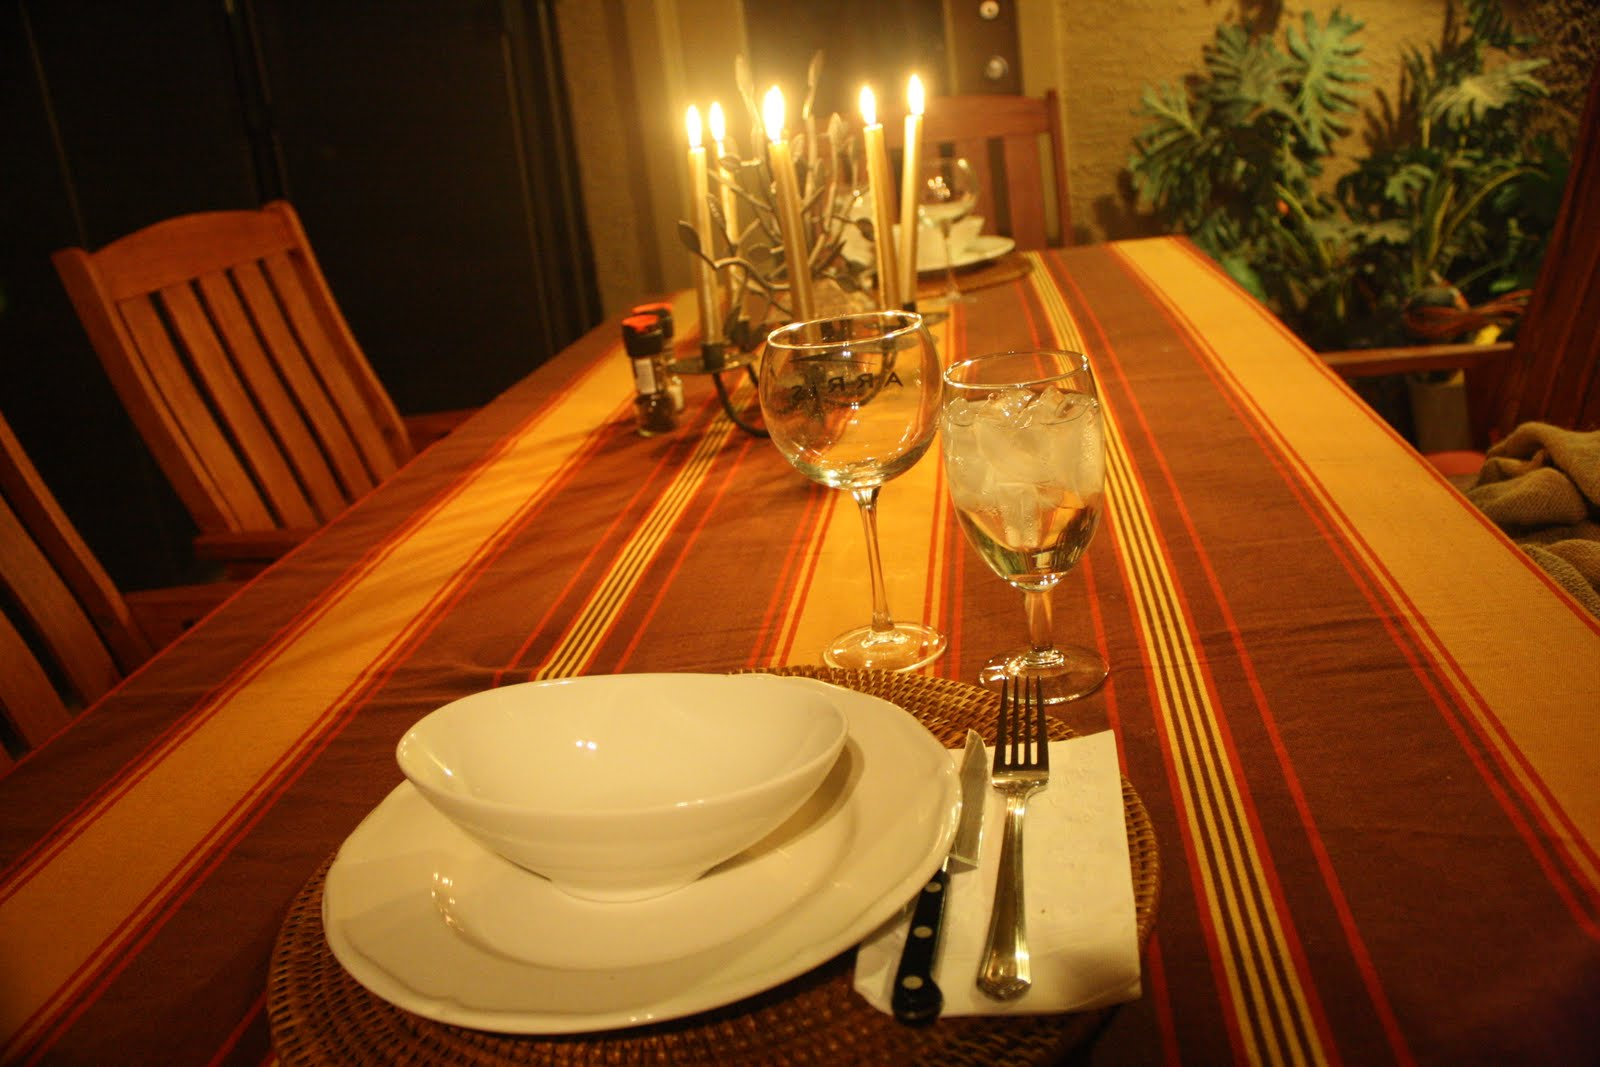 Here is our romantic table